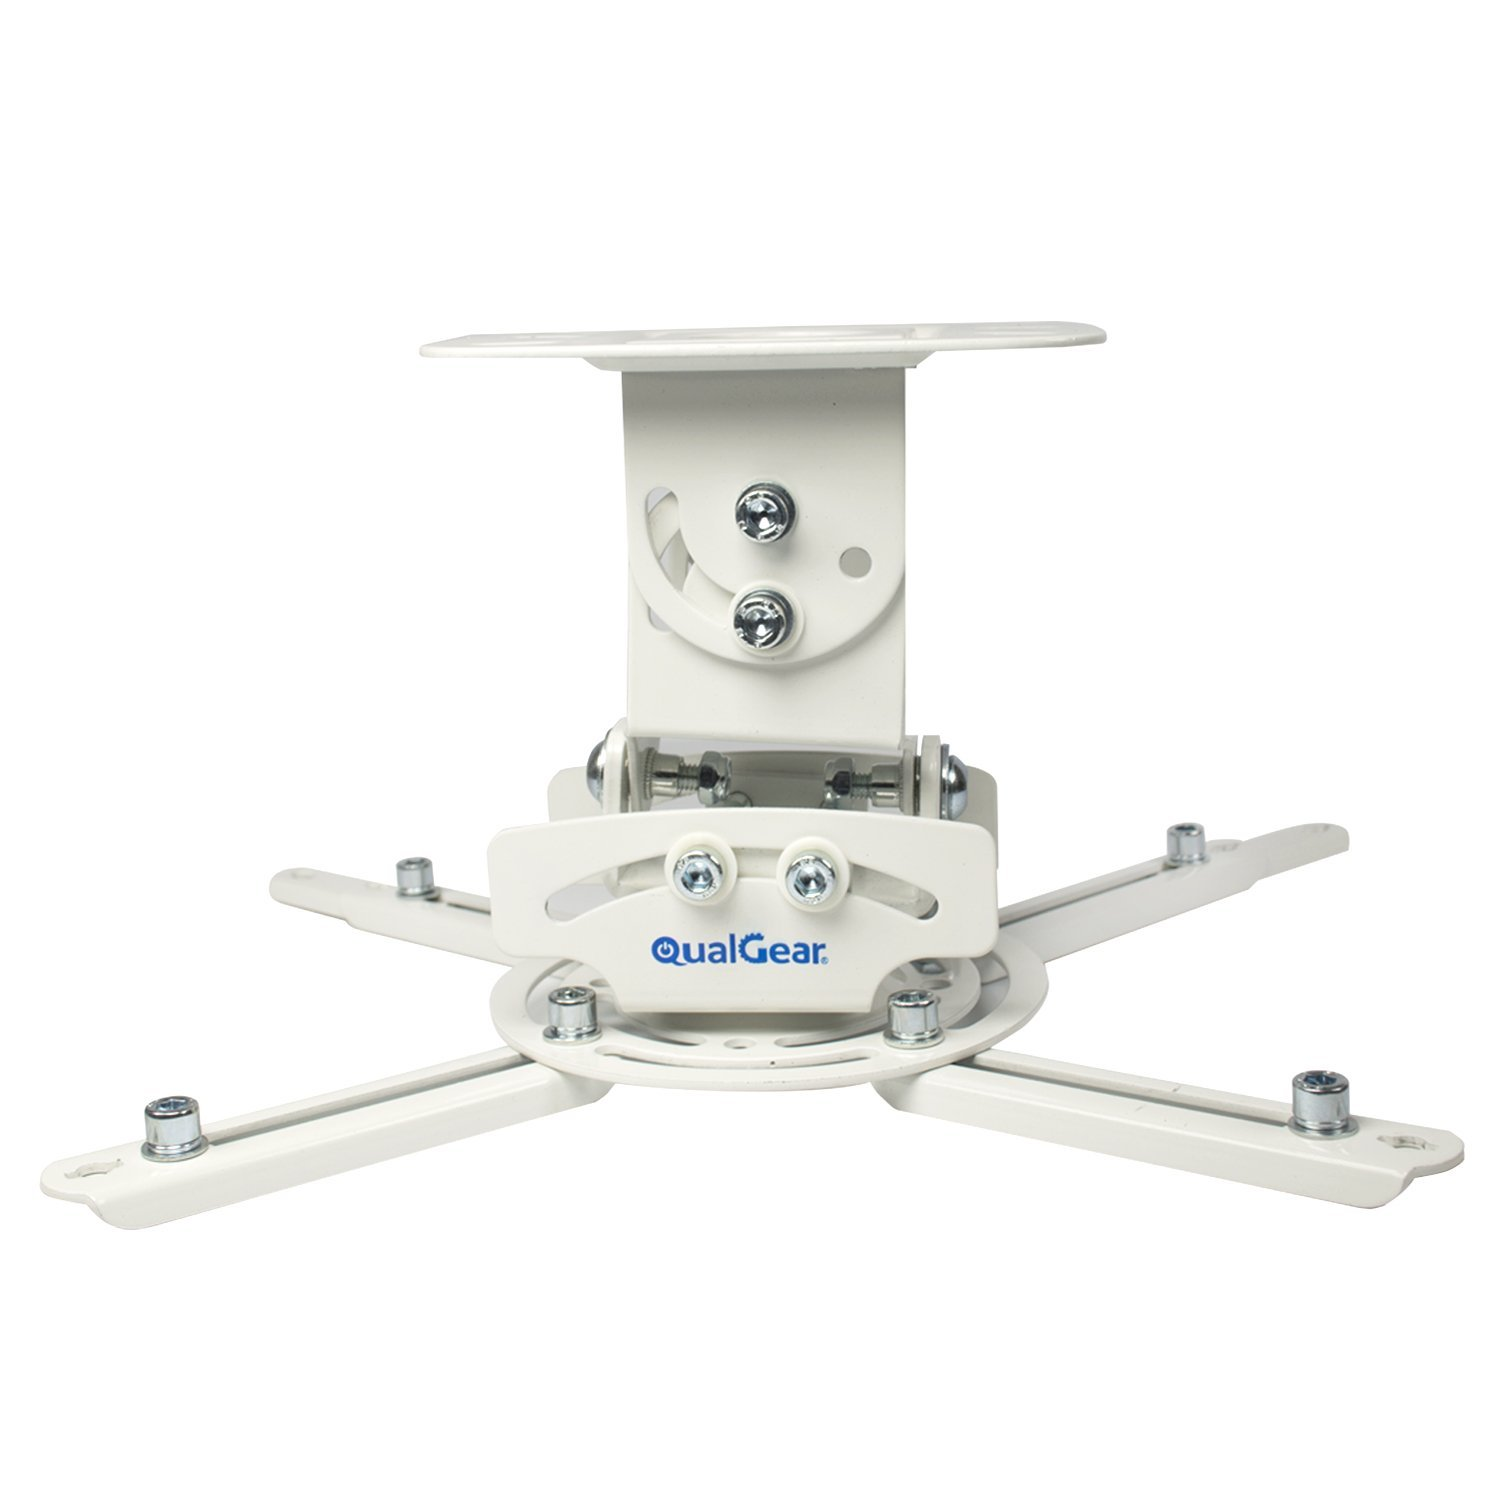 QualGear� PRB-717-WHT Universal Ceiling Mount Projector Accessory